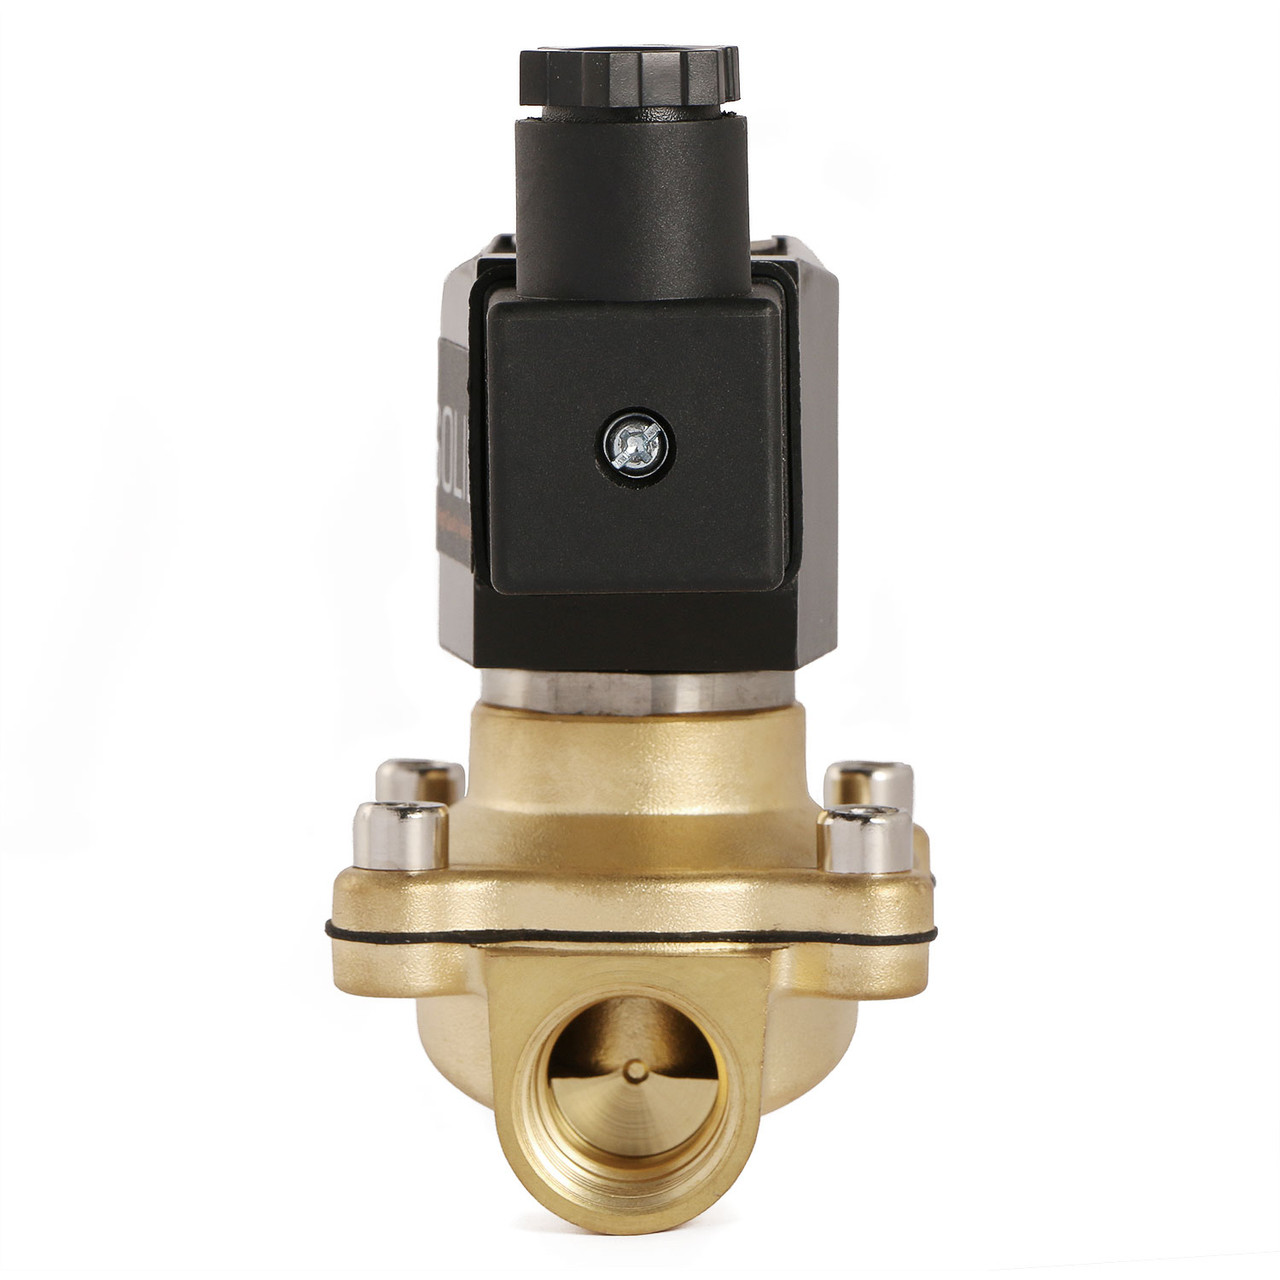 """U.S. Solid 1/2"""" Brass Electric Solenoid Valve 12V DC Normally Closed VITON Air Water Oil Fuel"""